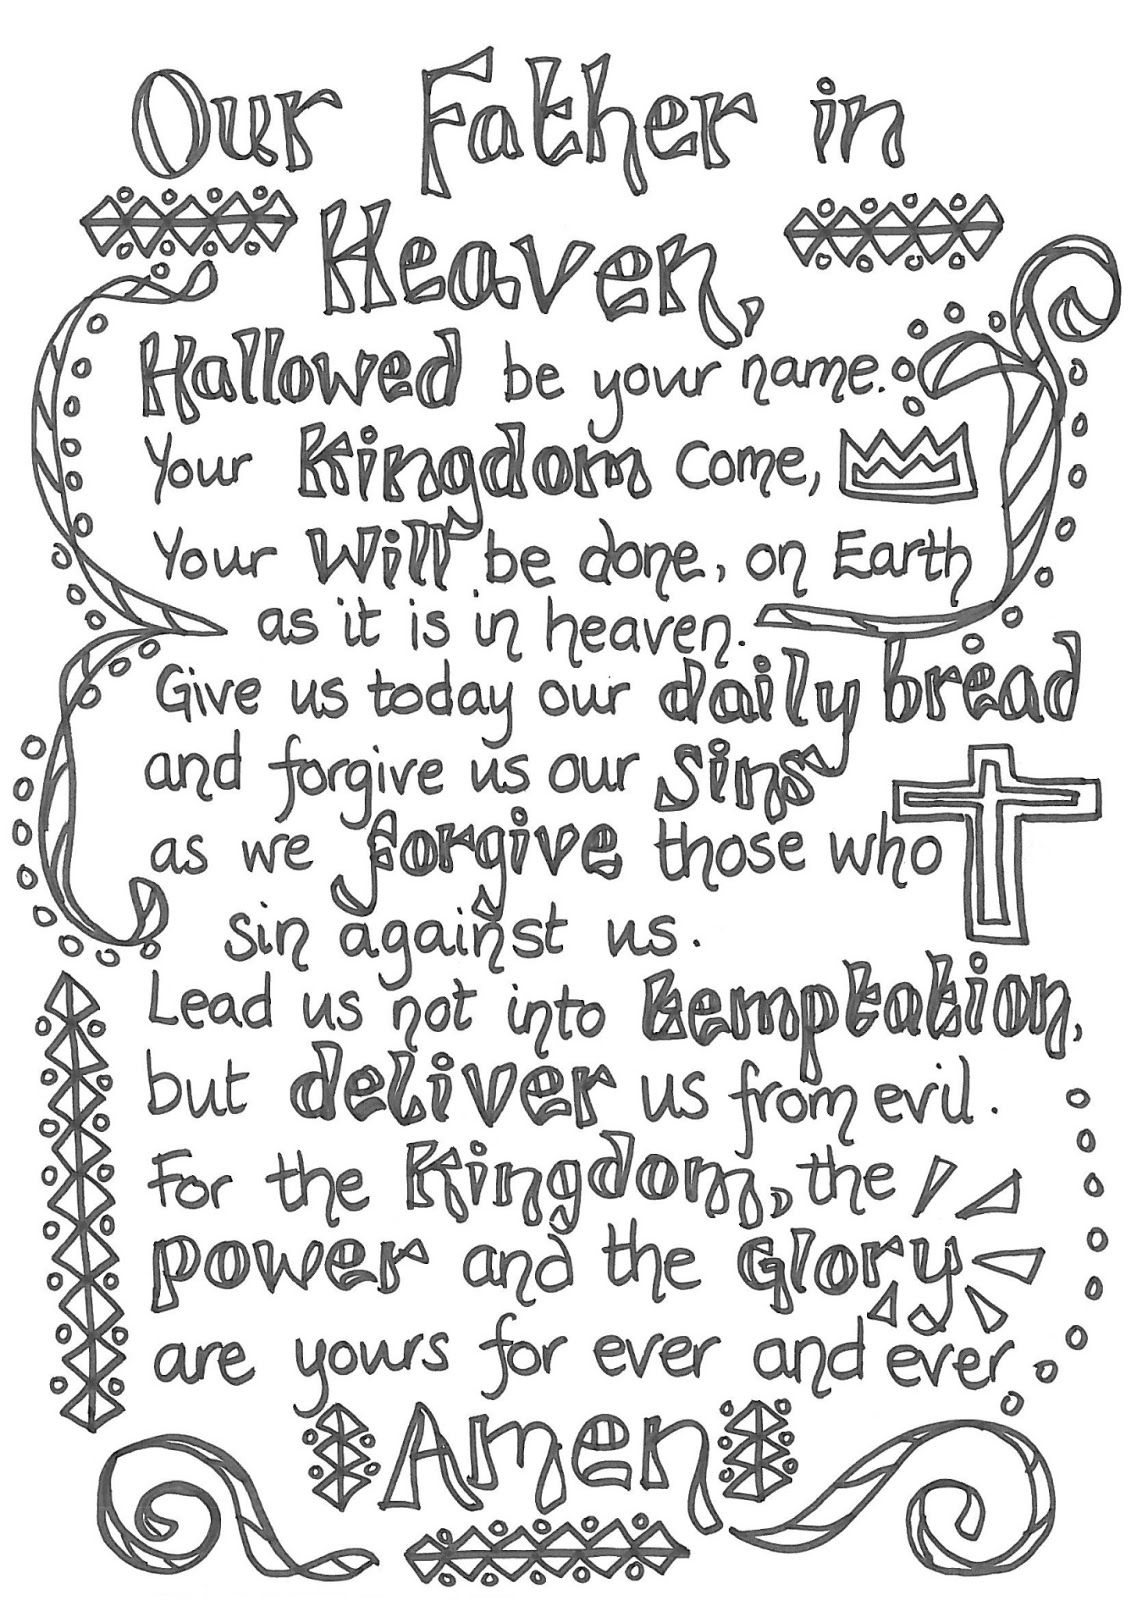 Flame: Creative Children's Ministry: Prayers to colour in